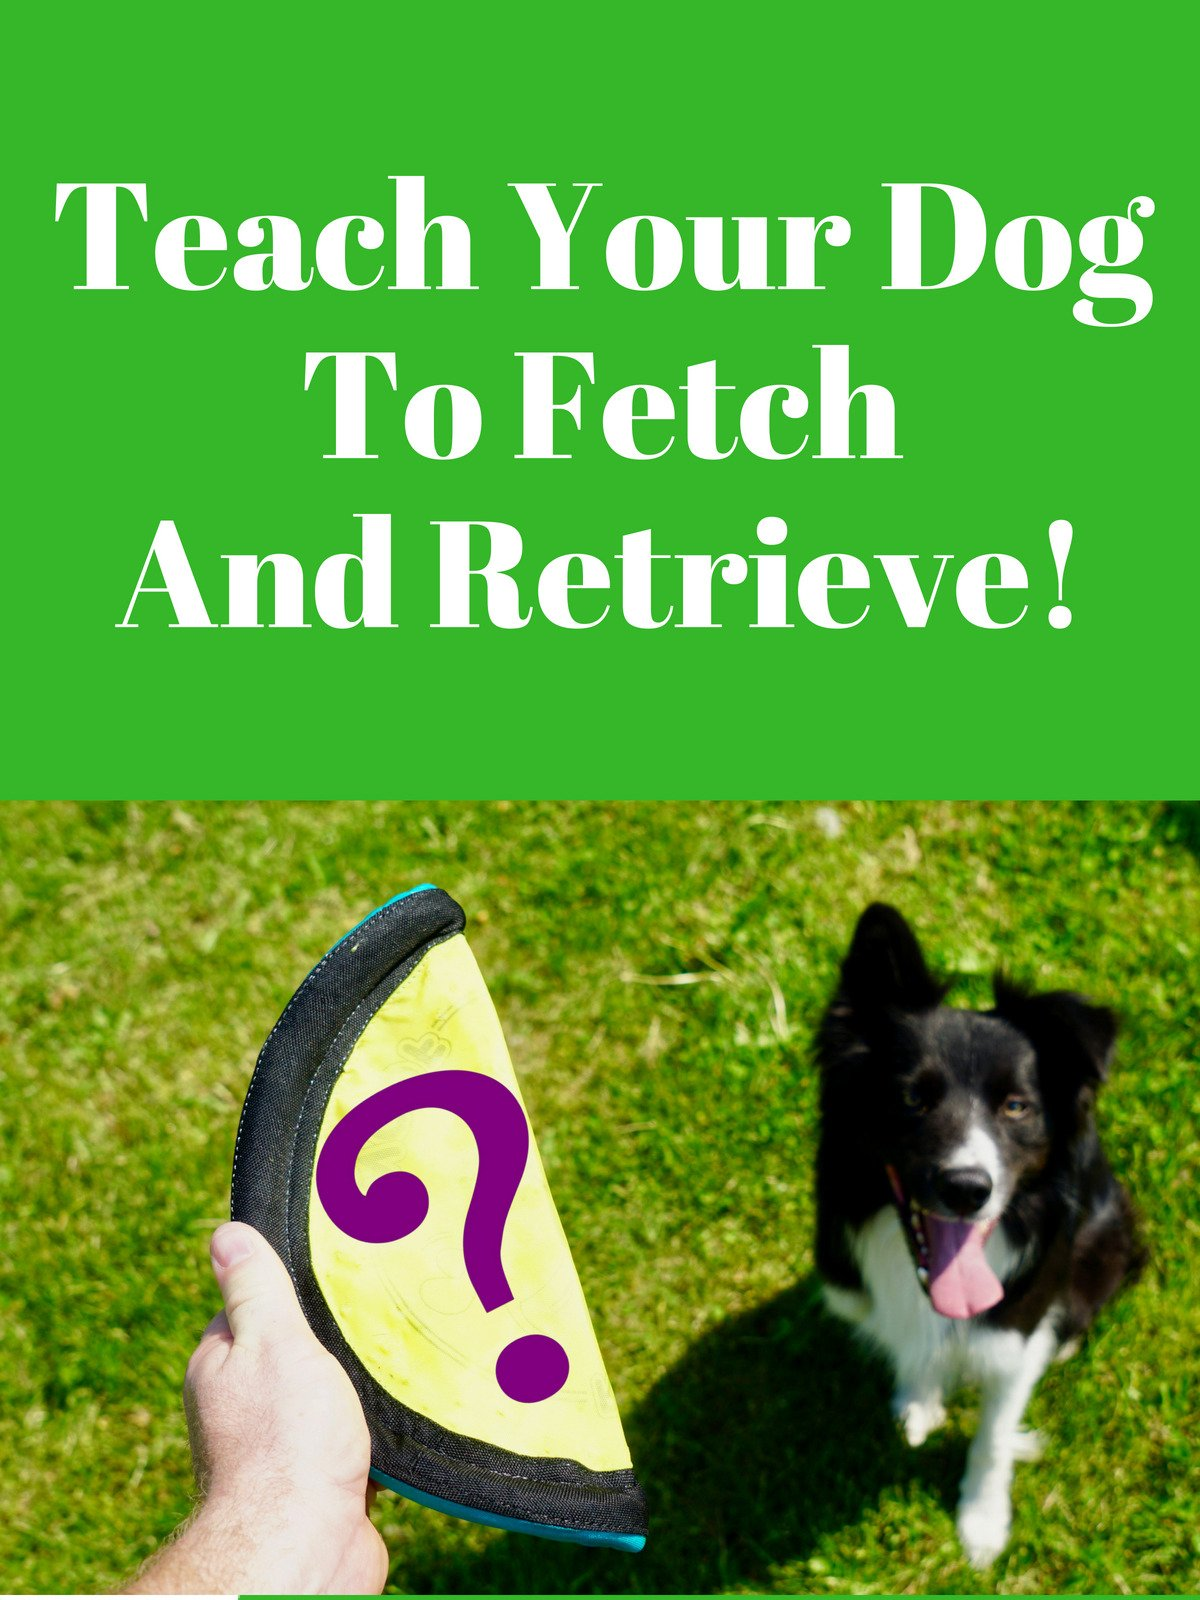 Teach Your Dog To Fetch And Retrieve